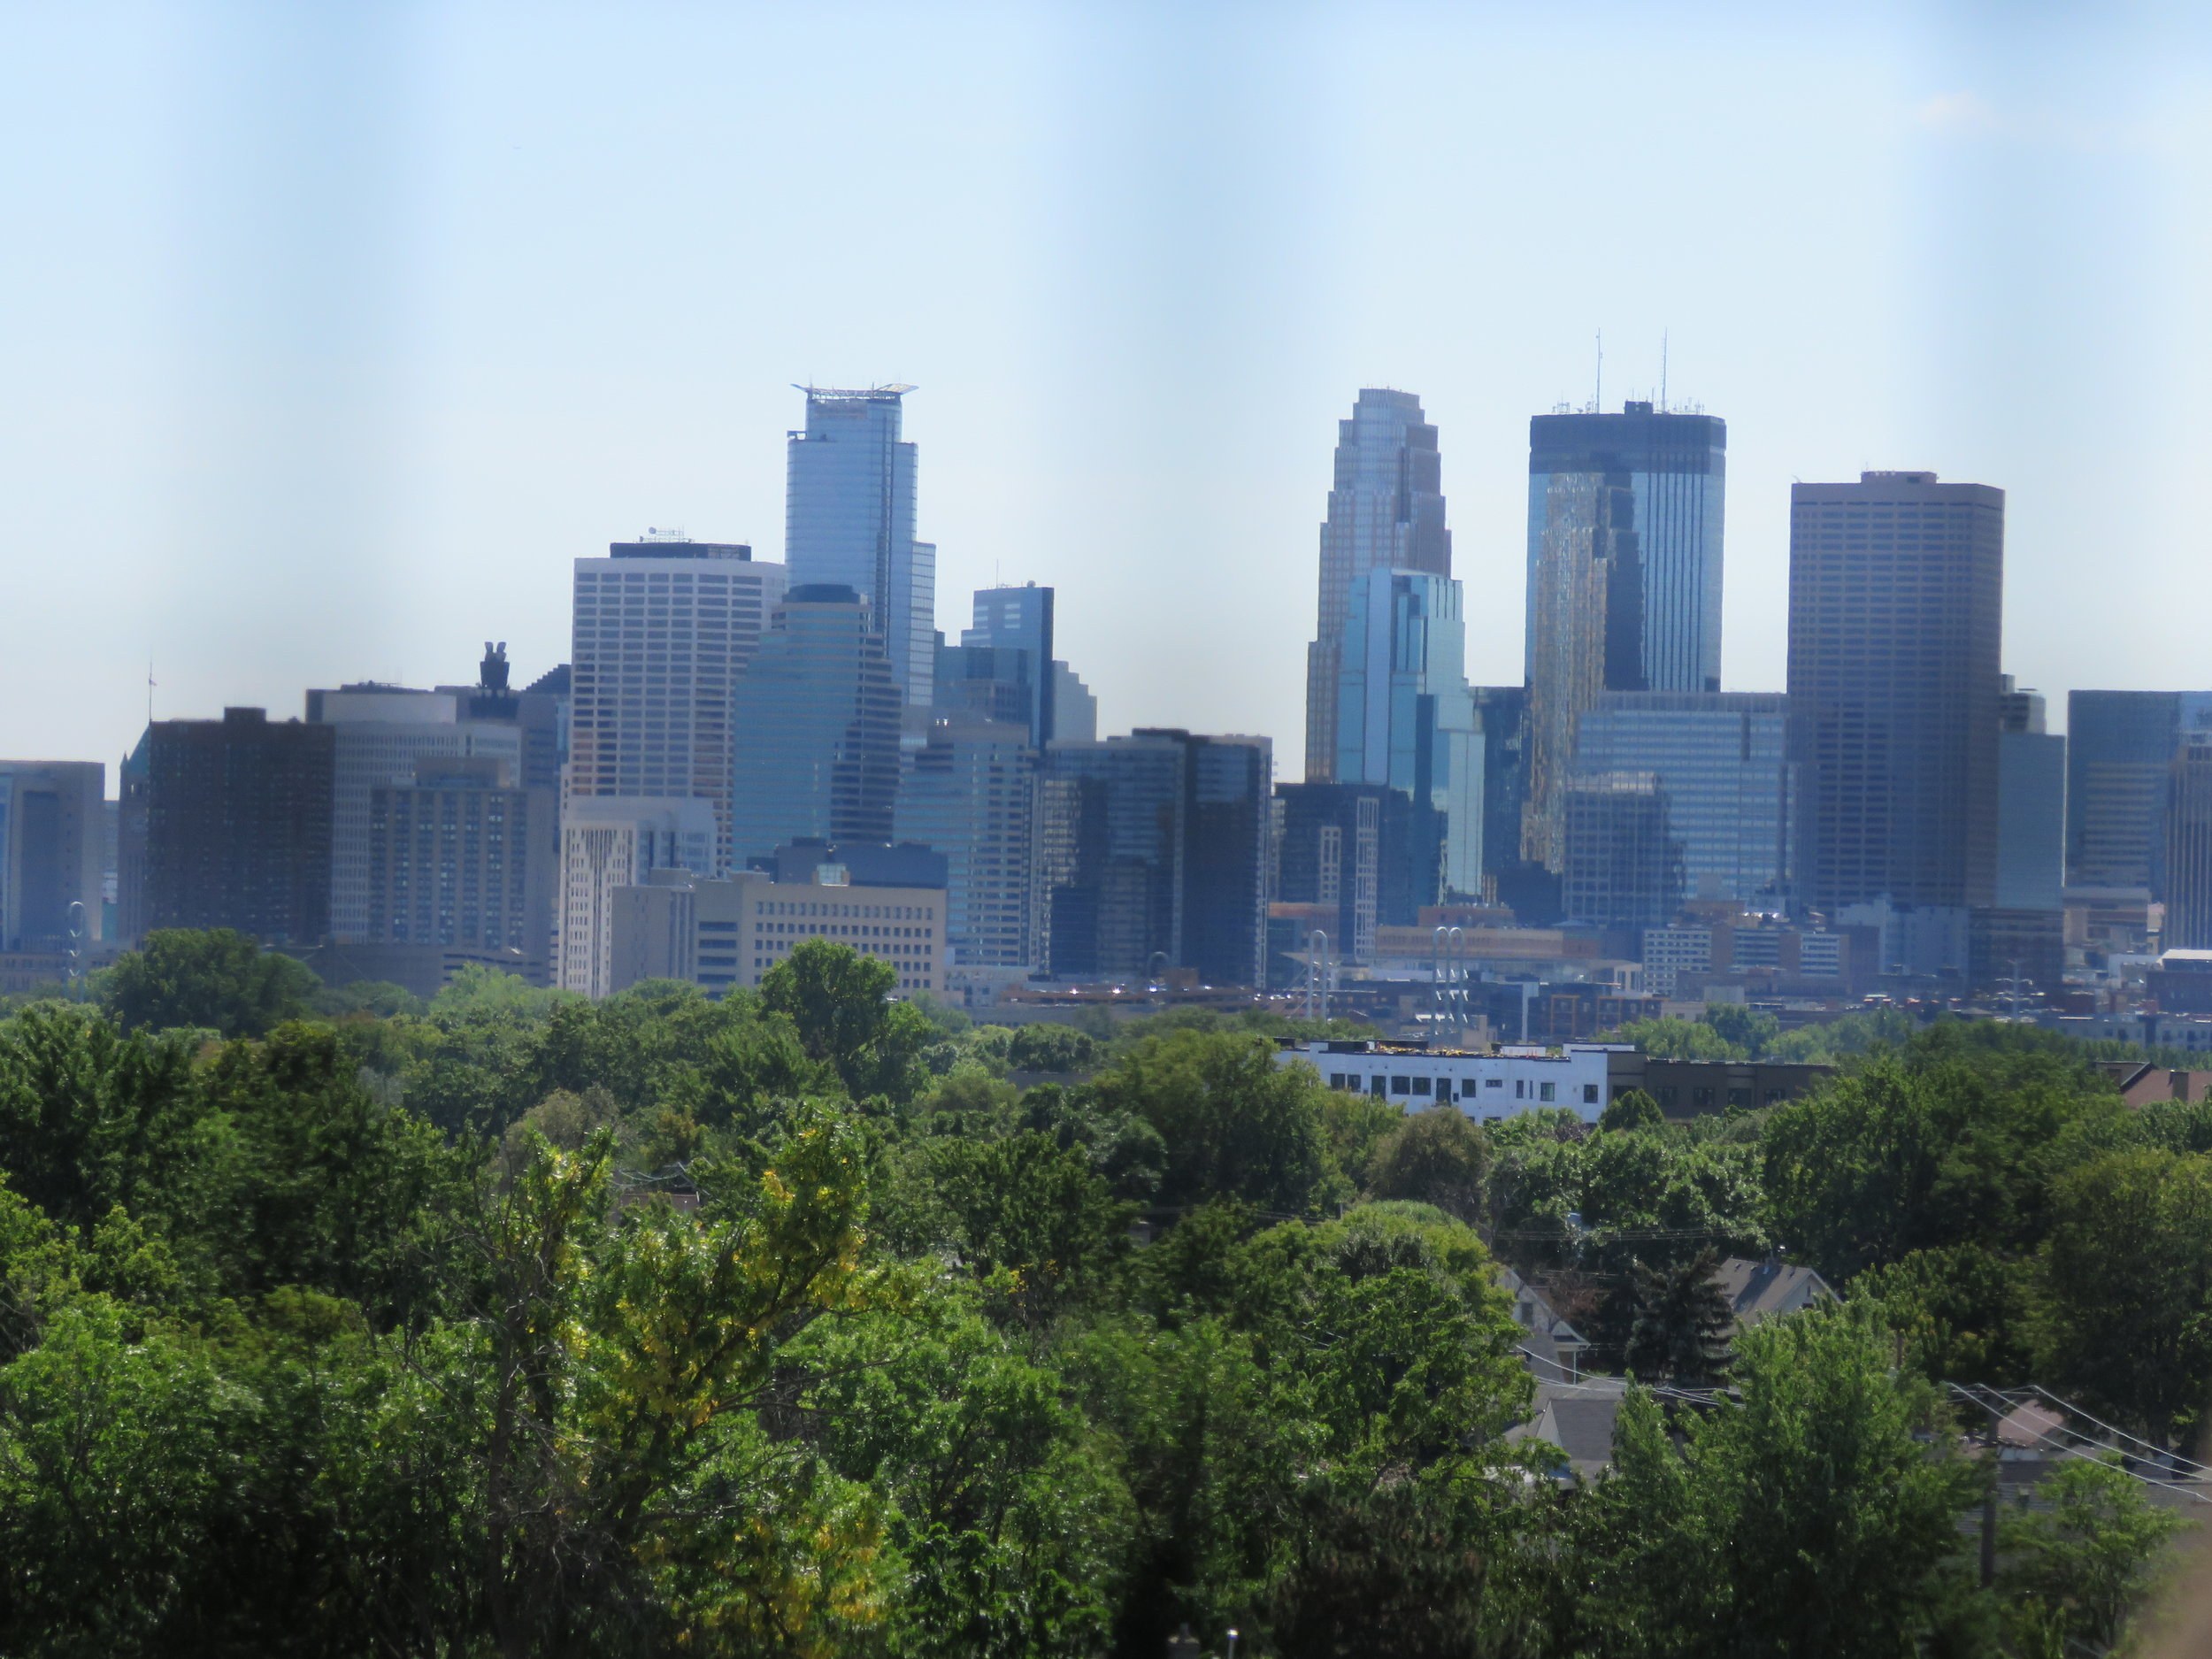 View from HC Church Tower - Downtown Minneapolis